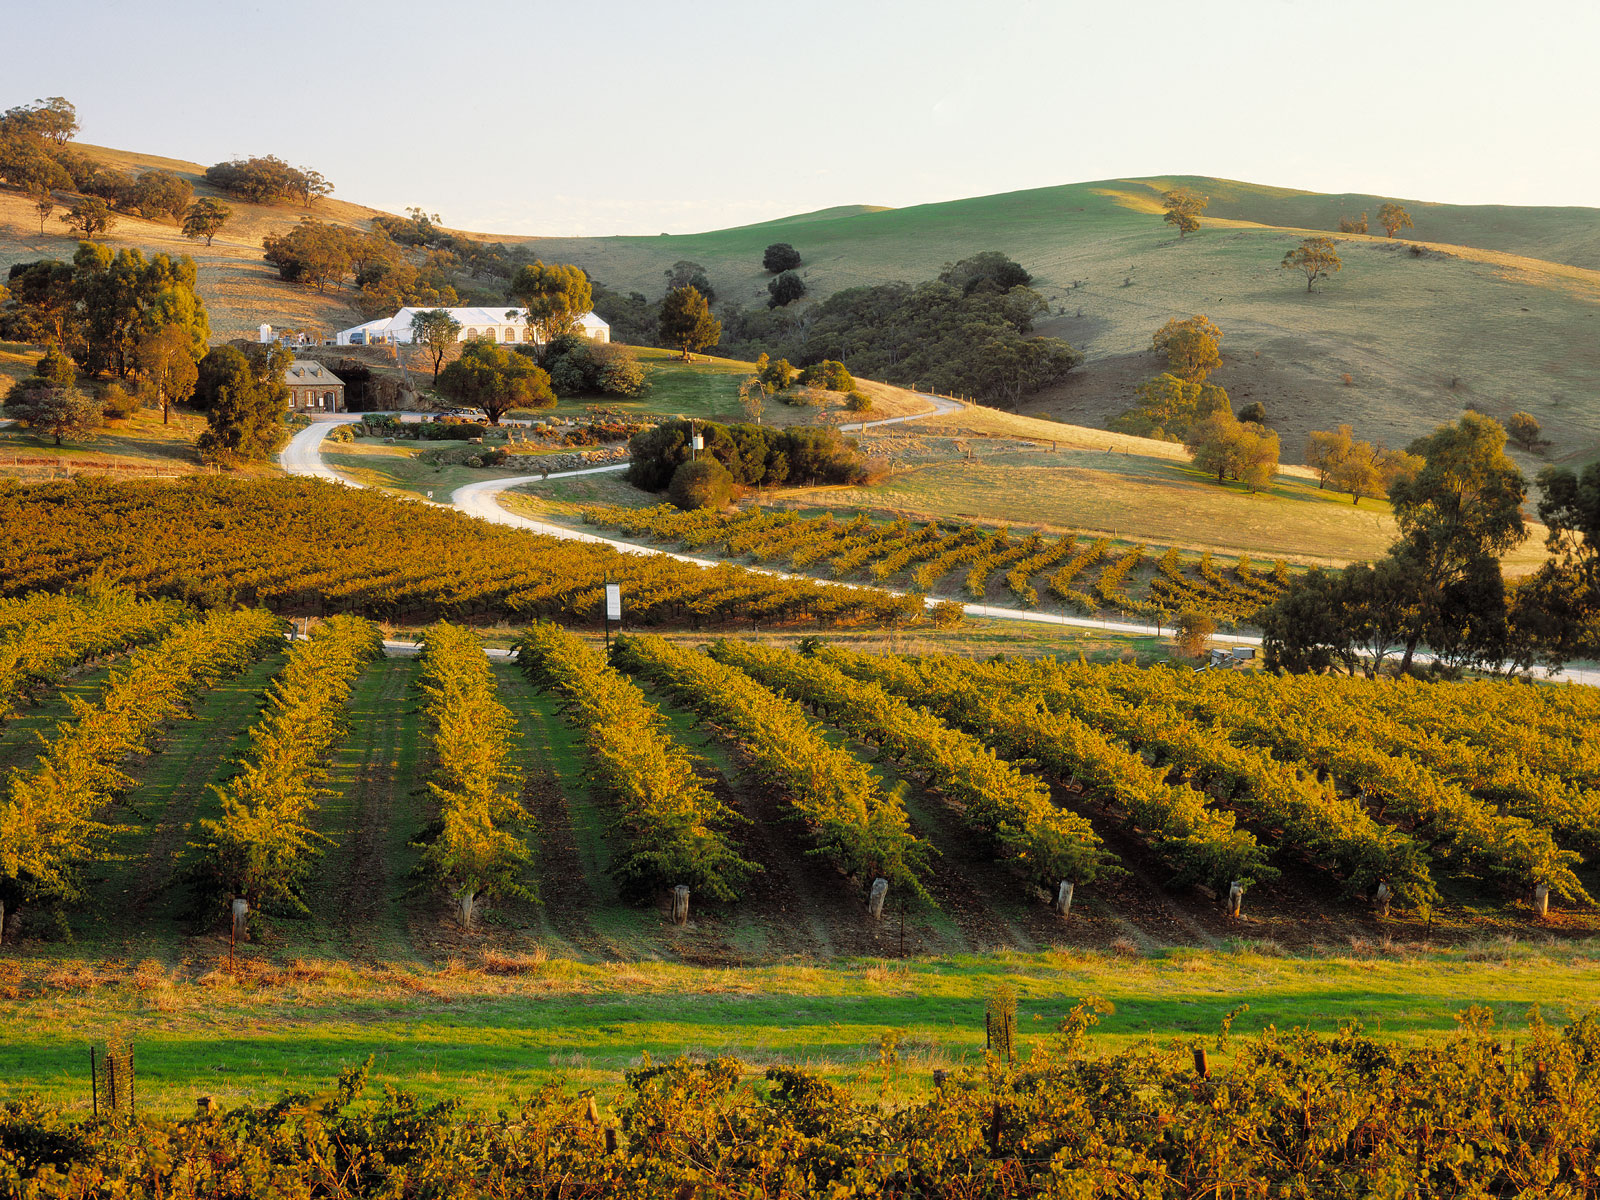 A Wine Guide to Australia's Barossa and Eden Valleys: The Vineyards to Visit and Bottles to Buy